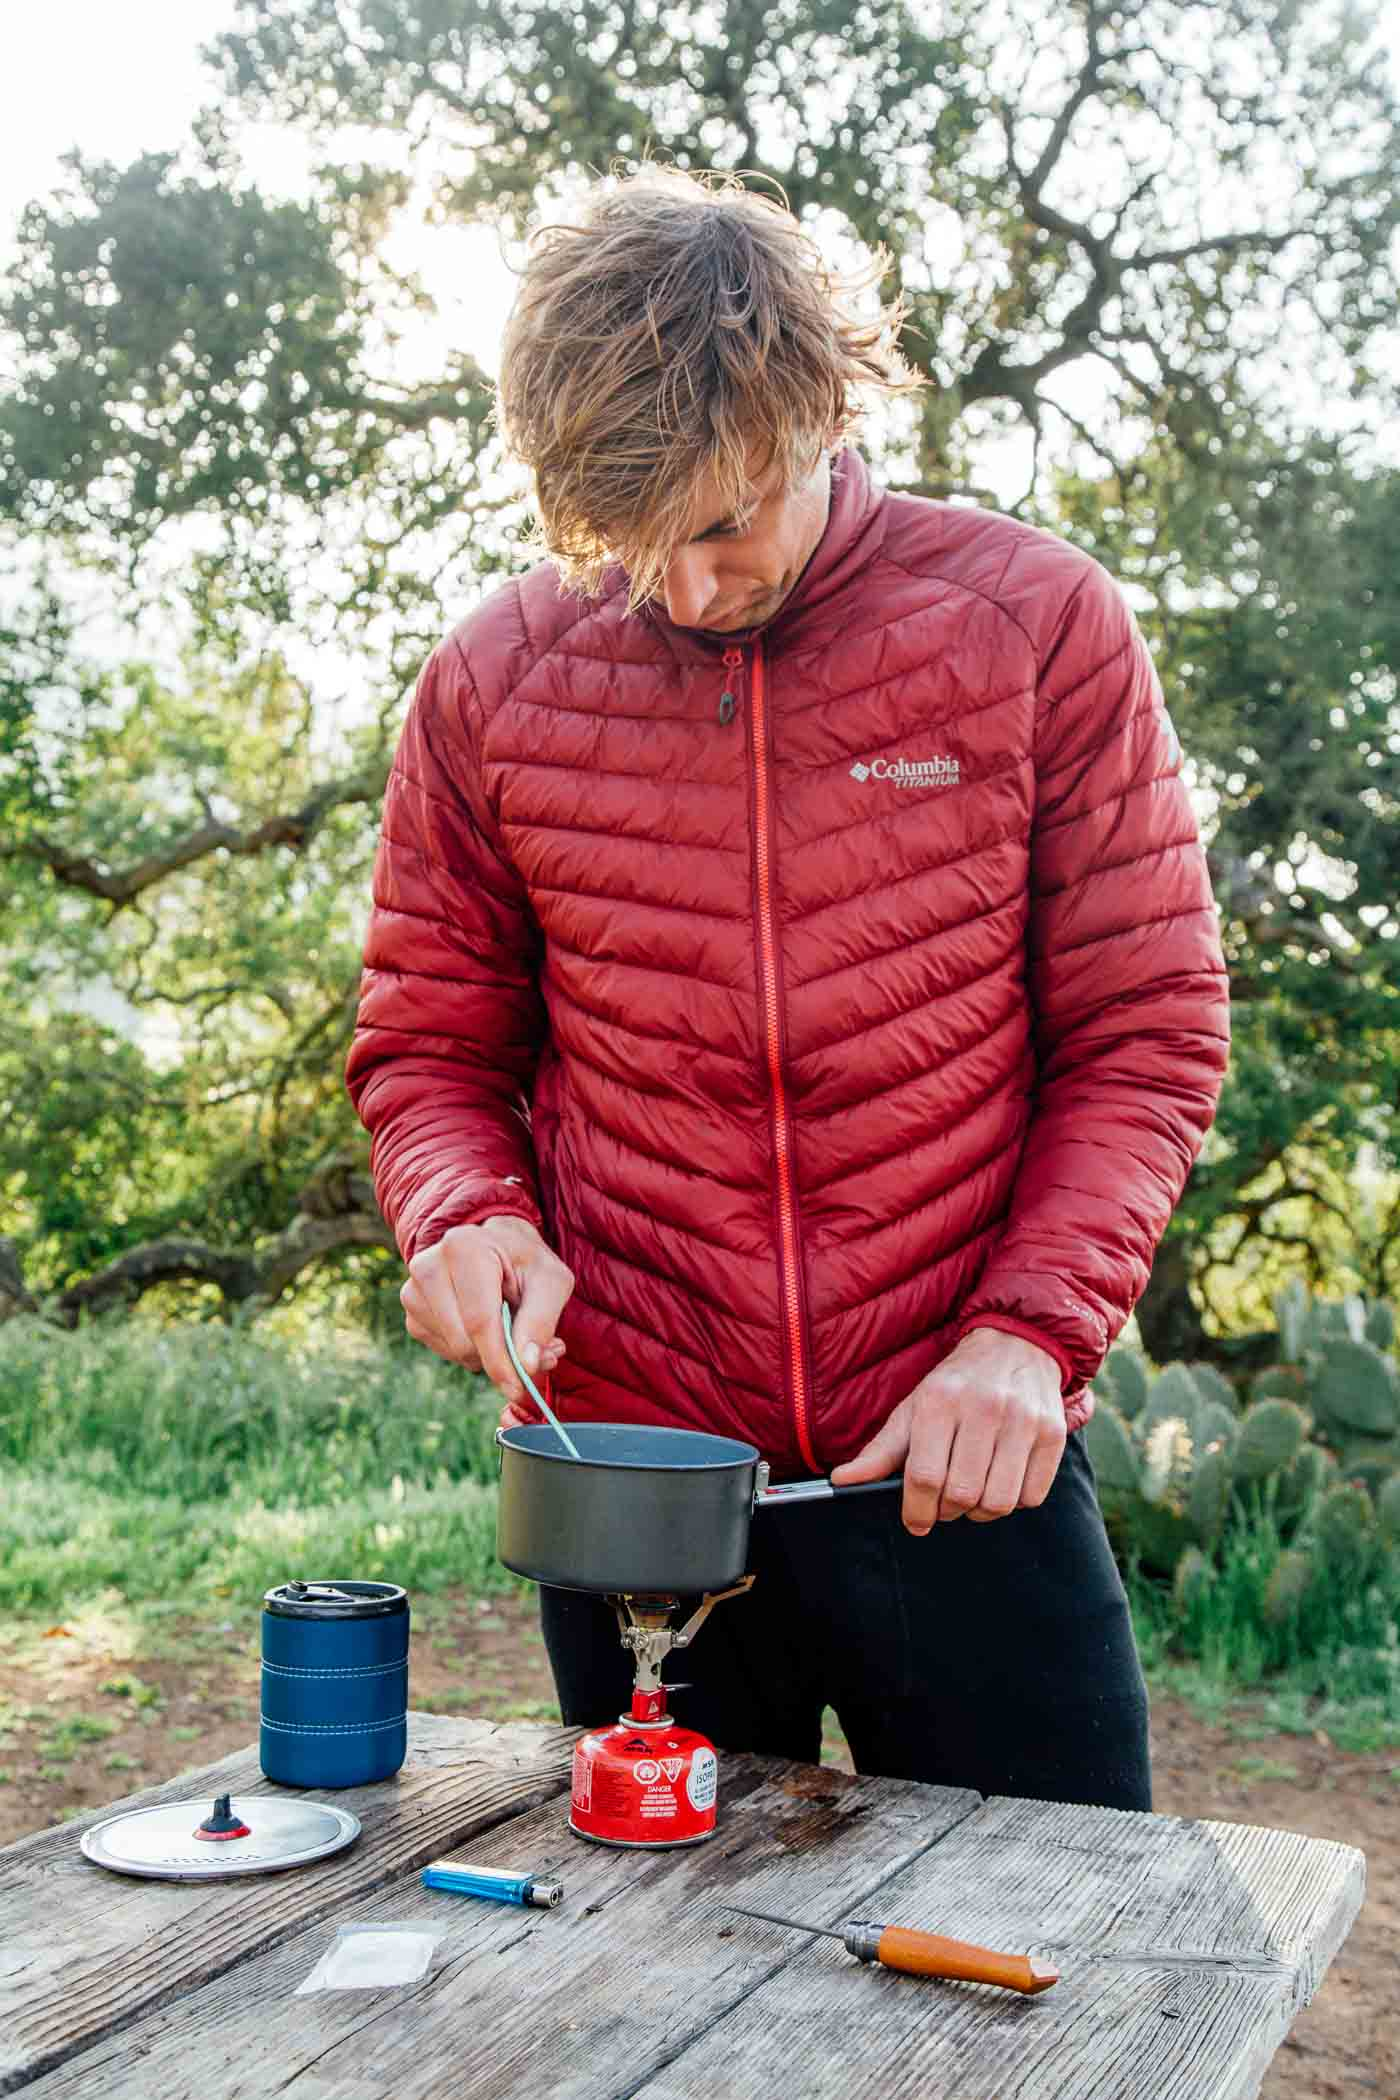 Man cooking in a pot over a small backpacking stove.